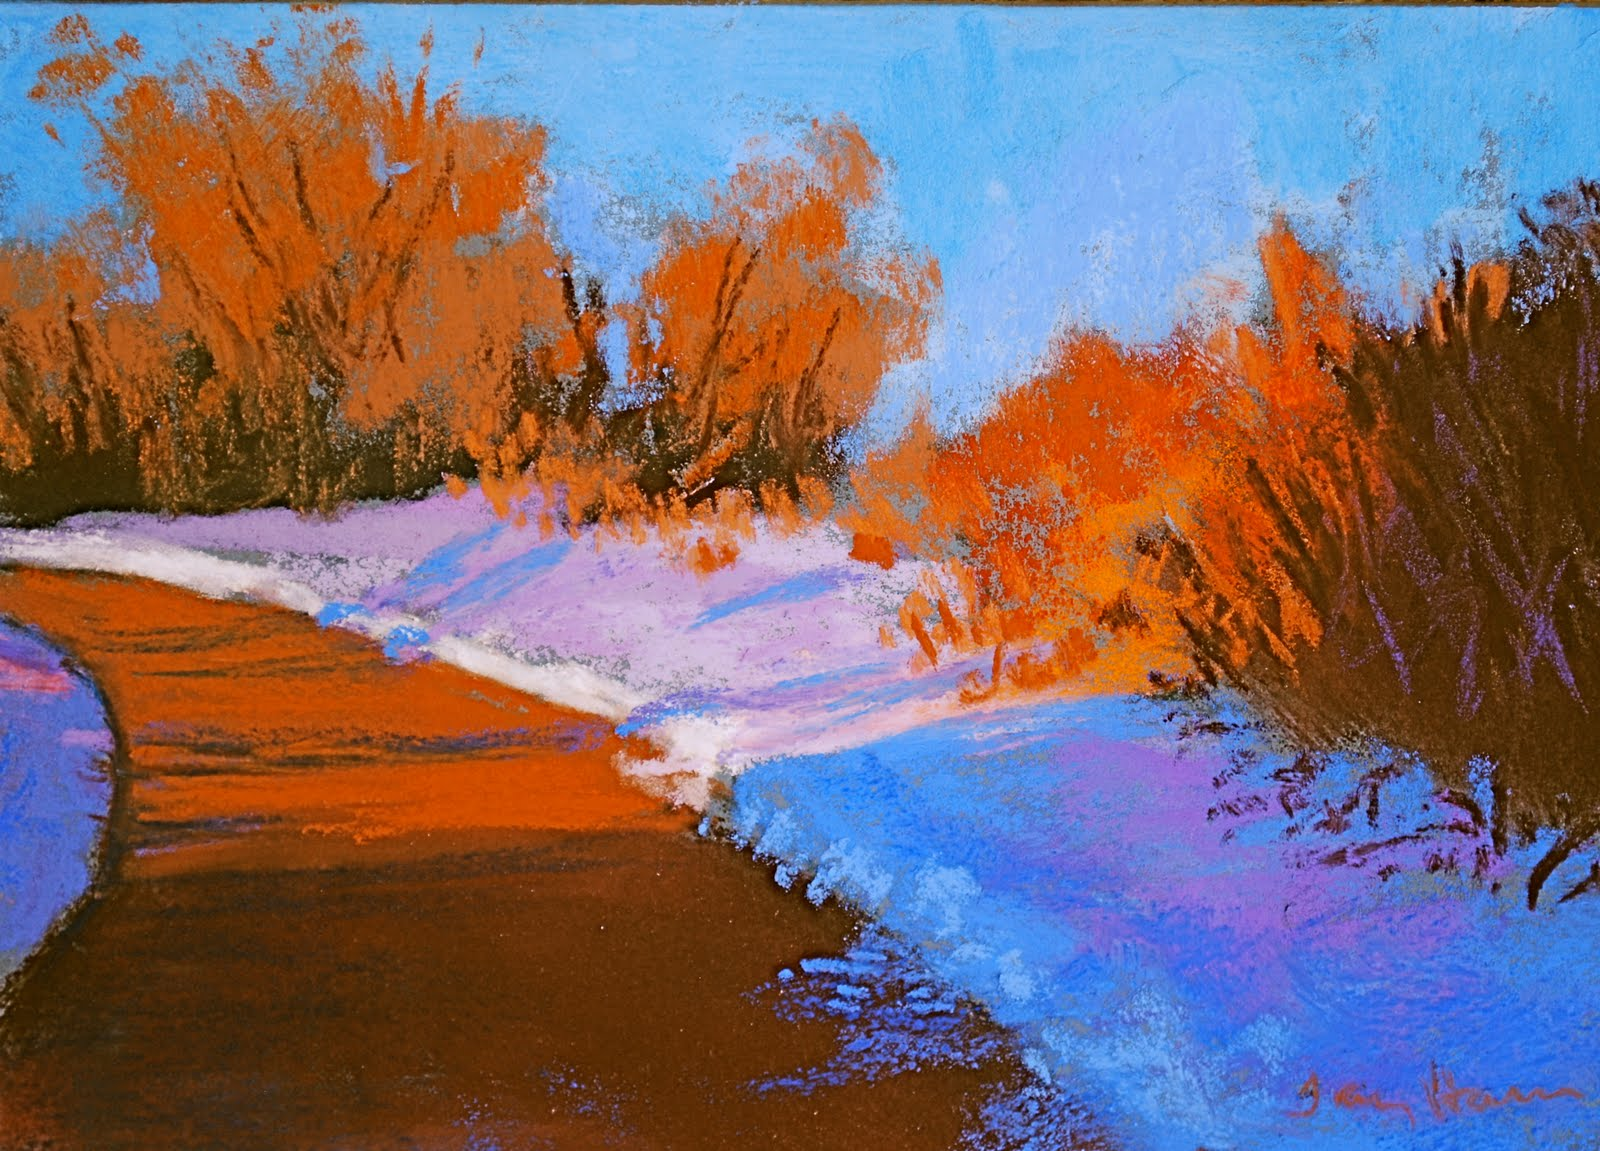 Stroll Along Platte Colorful Landscape Paintings By Colorado Artist Tracy Haines In Oil And Pastel Simple Shapes Complementary Color Scheme